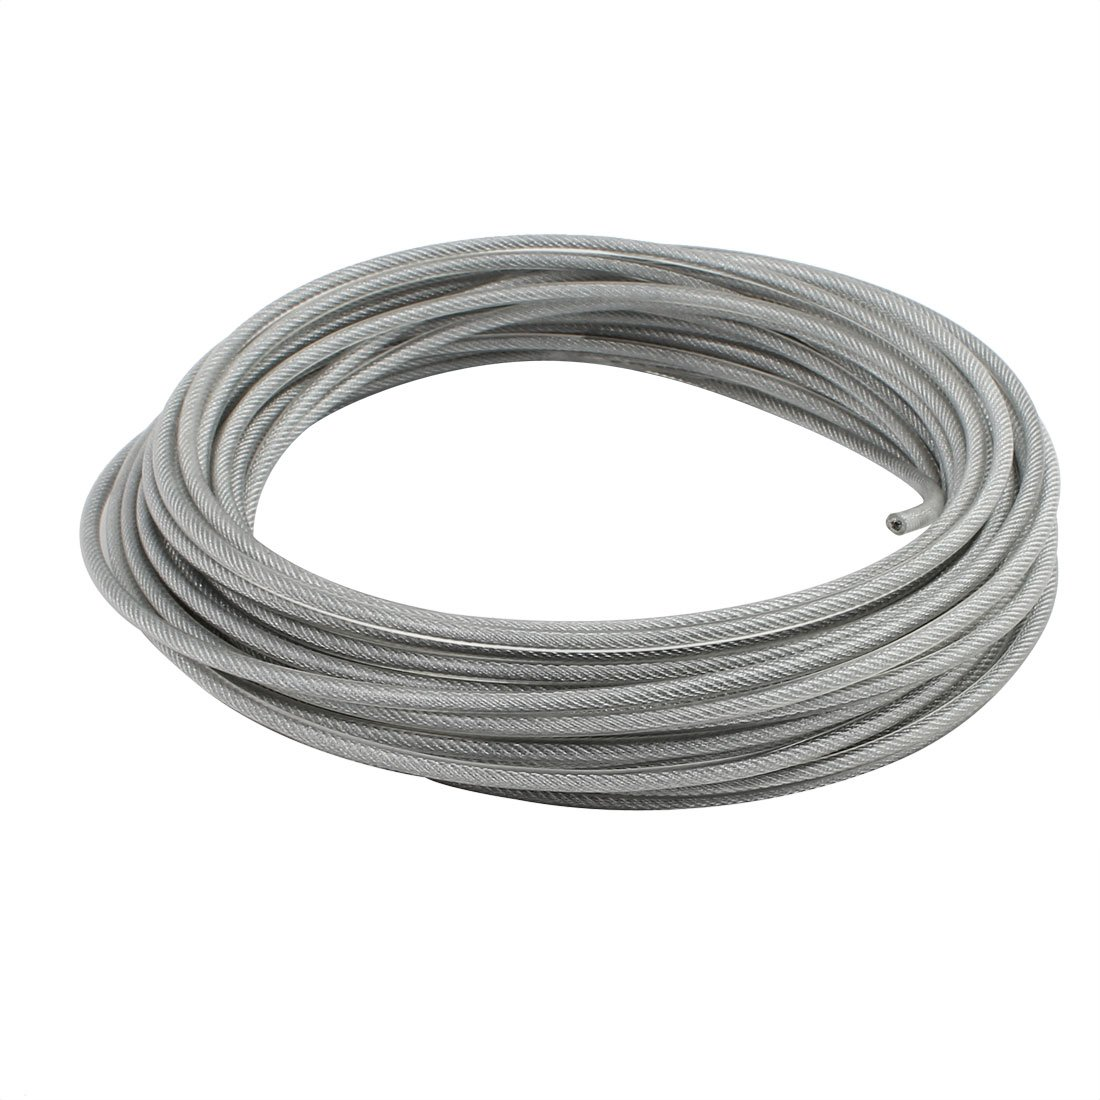 uxcell 4mm Diameter Vinyl Coated Wire Rope Aircraft Cable 16 Meters Length